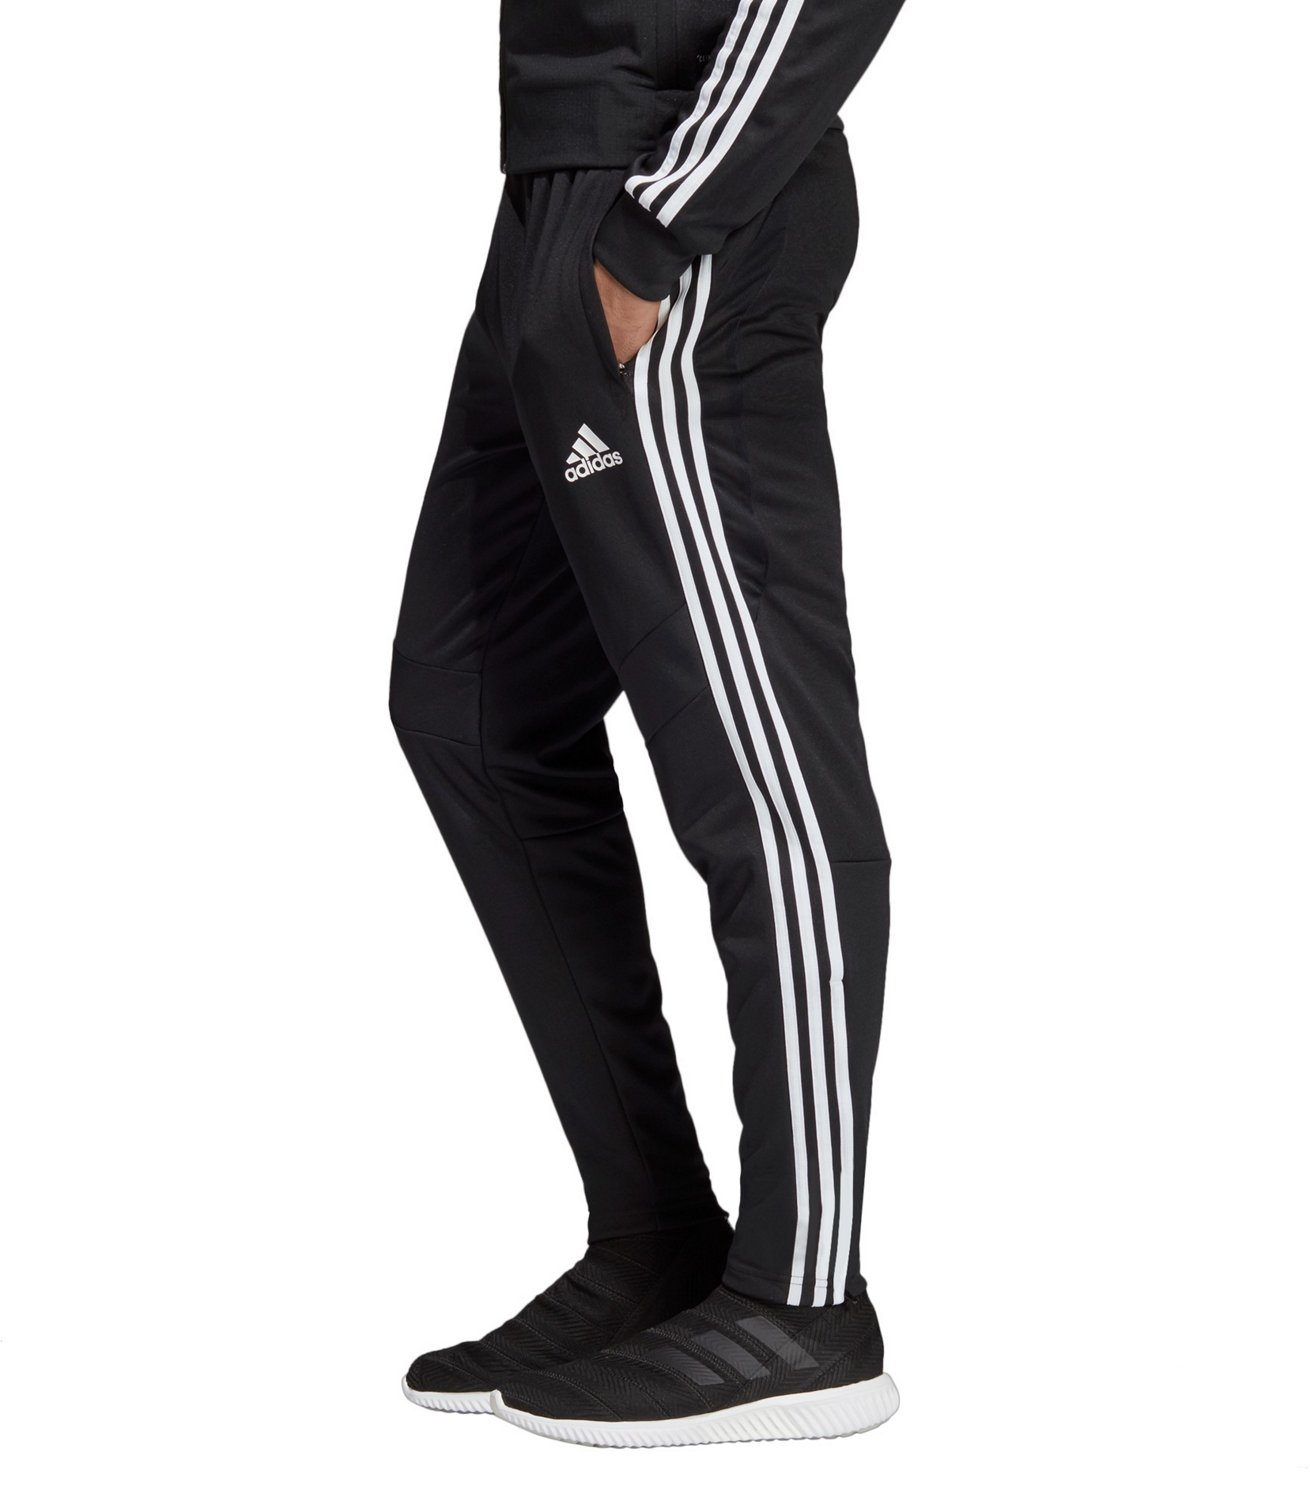 baf539c8c adidas Men's Tiro 19 Training Pants | Academy